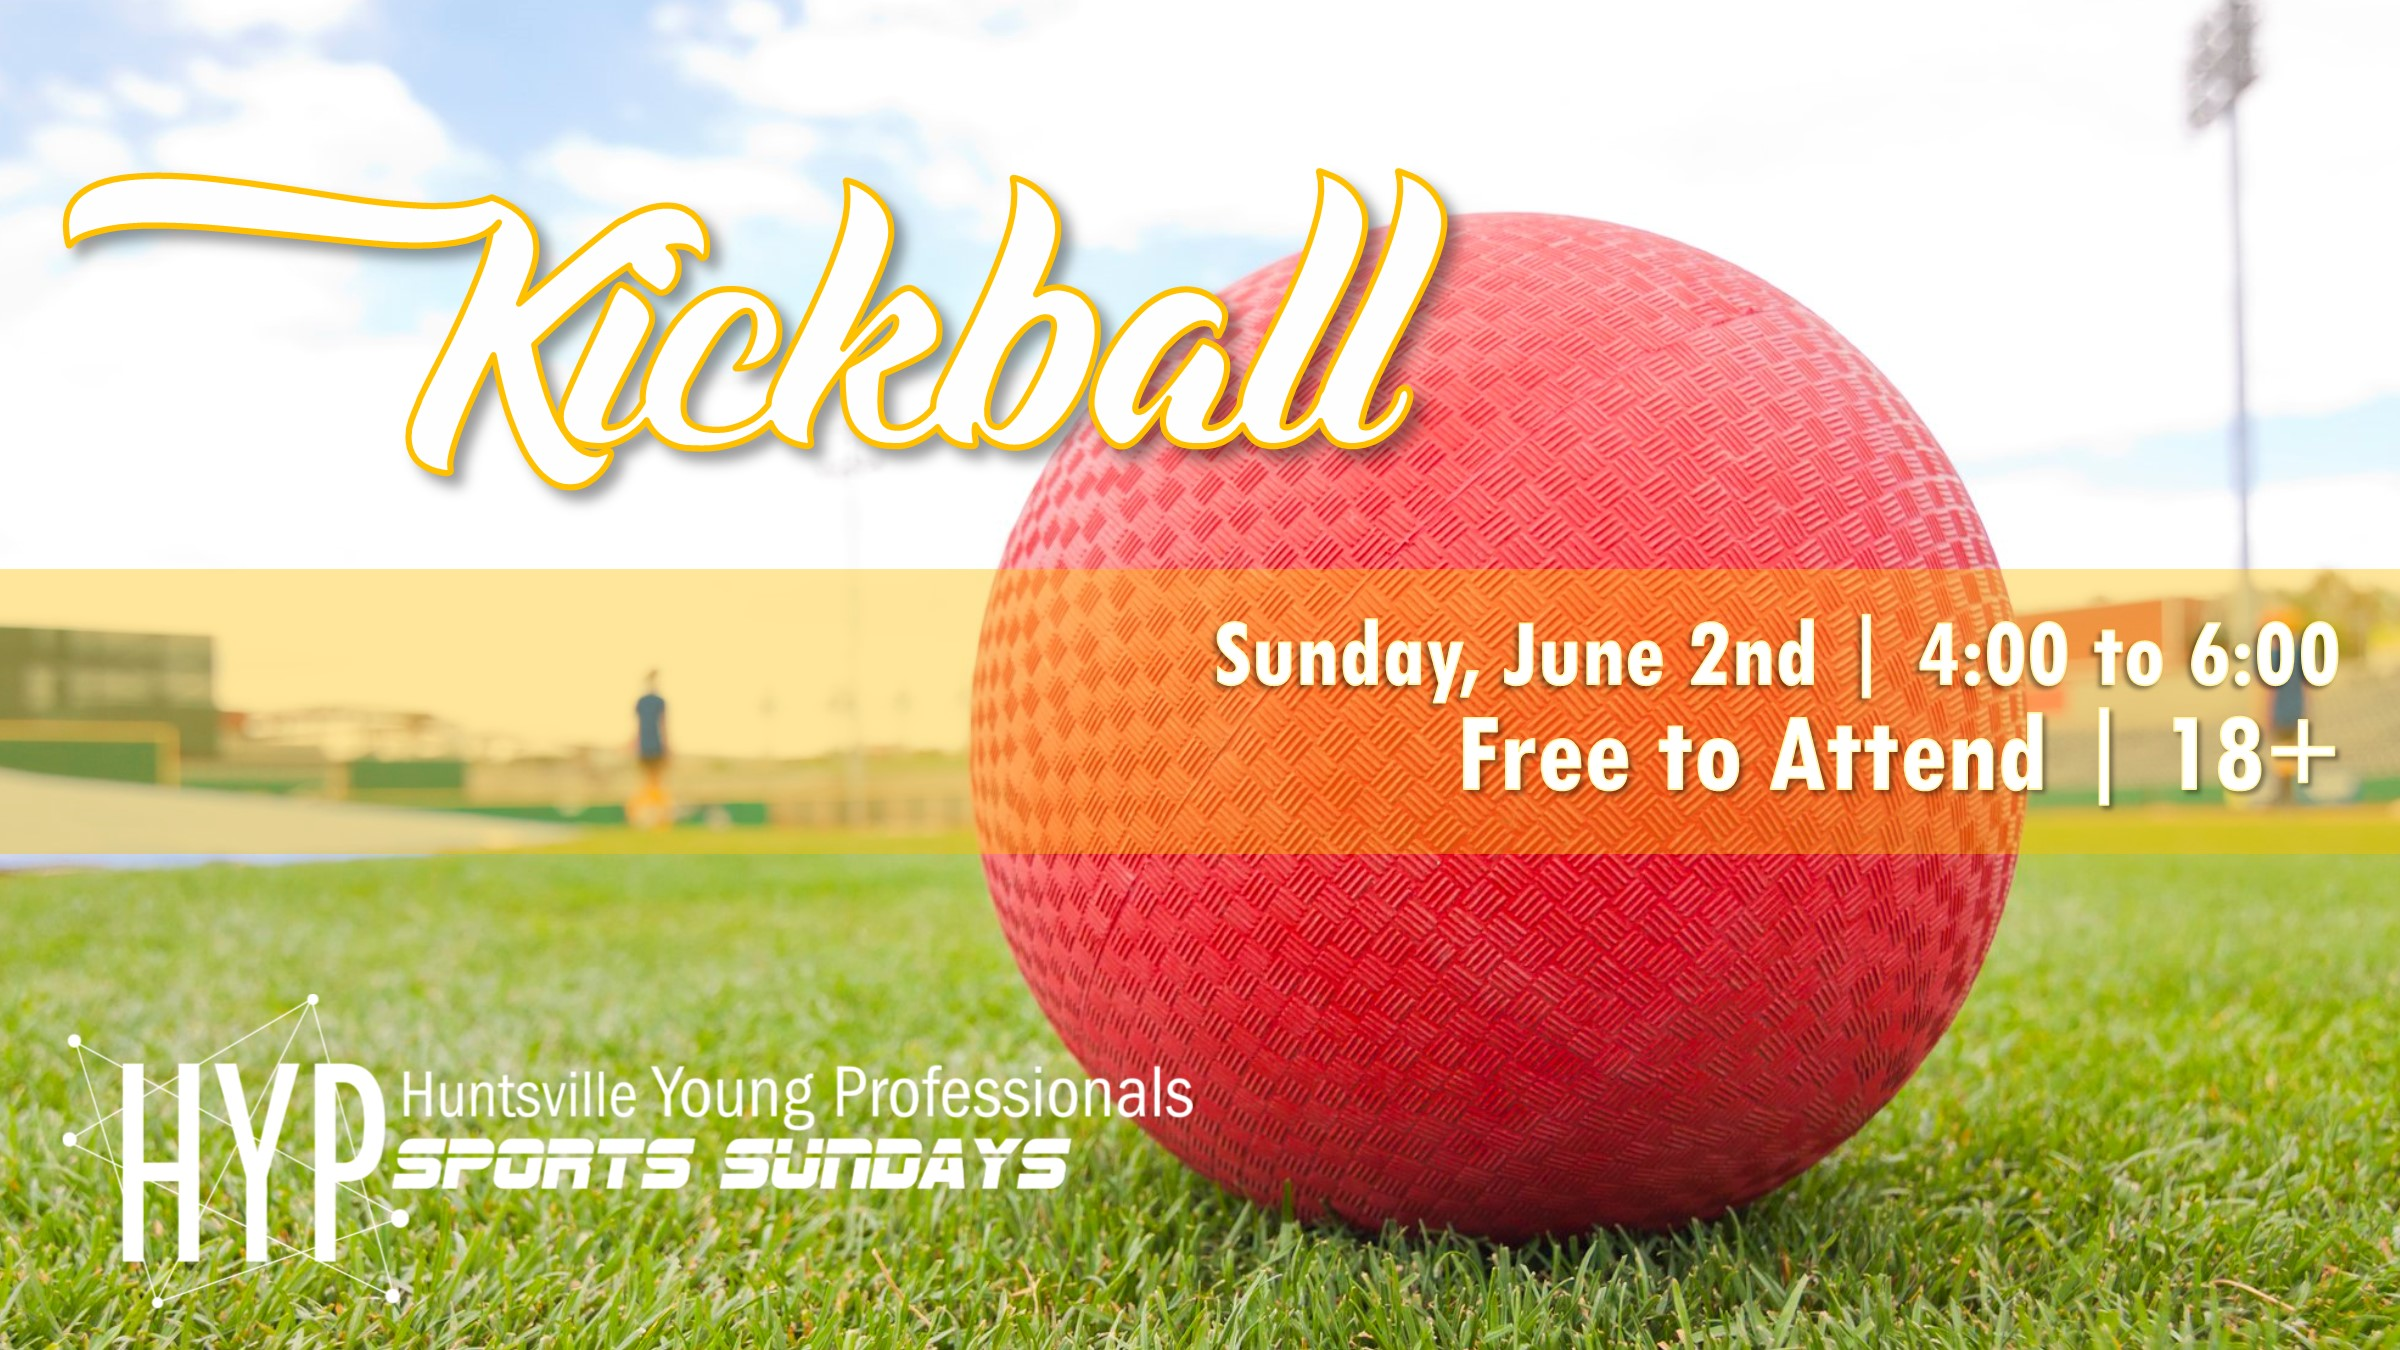 For the third iteration of Sports Sundays we will be playing Kickball. Think the skills you developed in grade school carried over to adulthood? Find out on June 2nd from 4:00 to 6:00 pm. Be sure to join the Facebook  Event  to stay up to date.